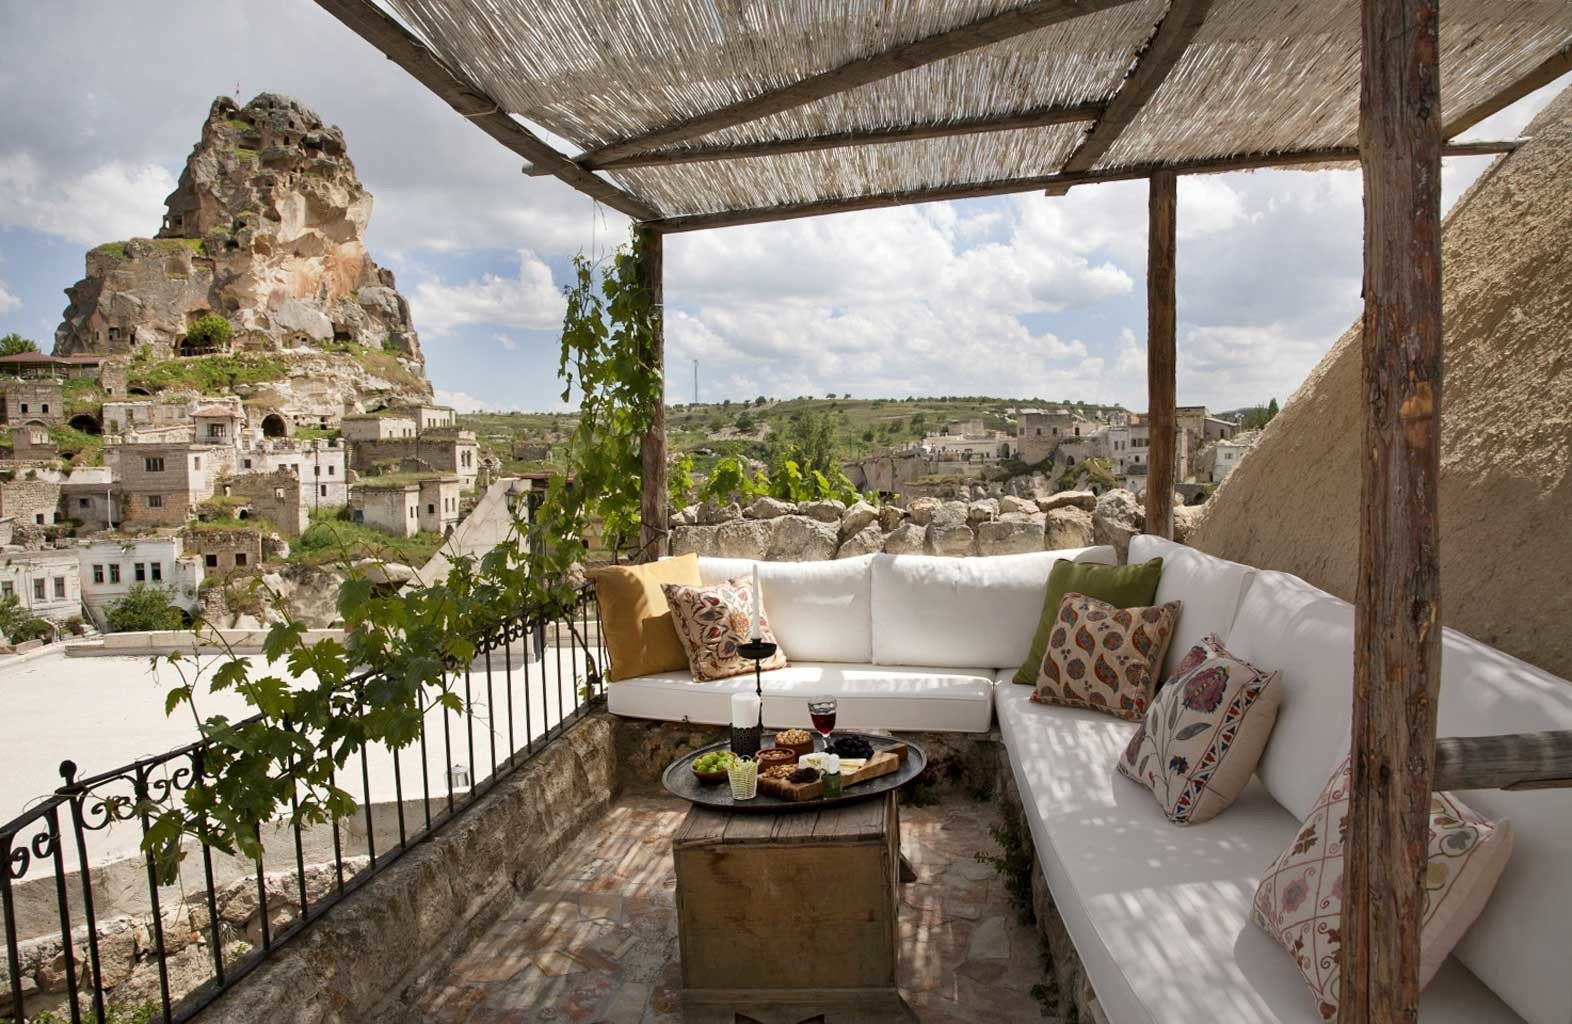 Balcony Deck Lounge Natural wonders Patio Rustic Scenic views Terrace building property house home Villa mansion cottage Resort Courtyard